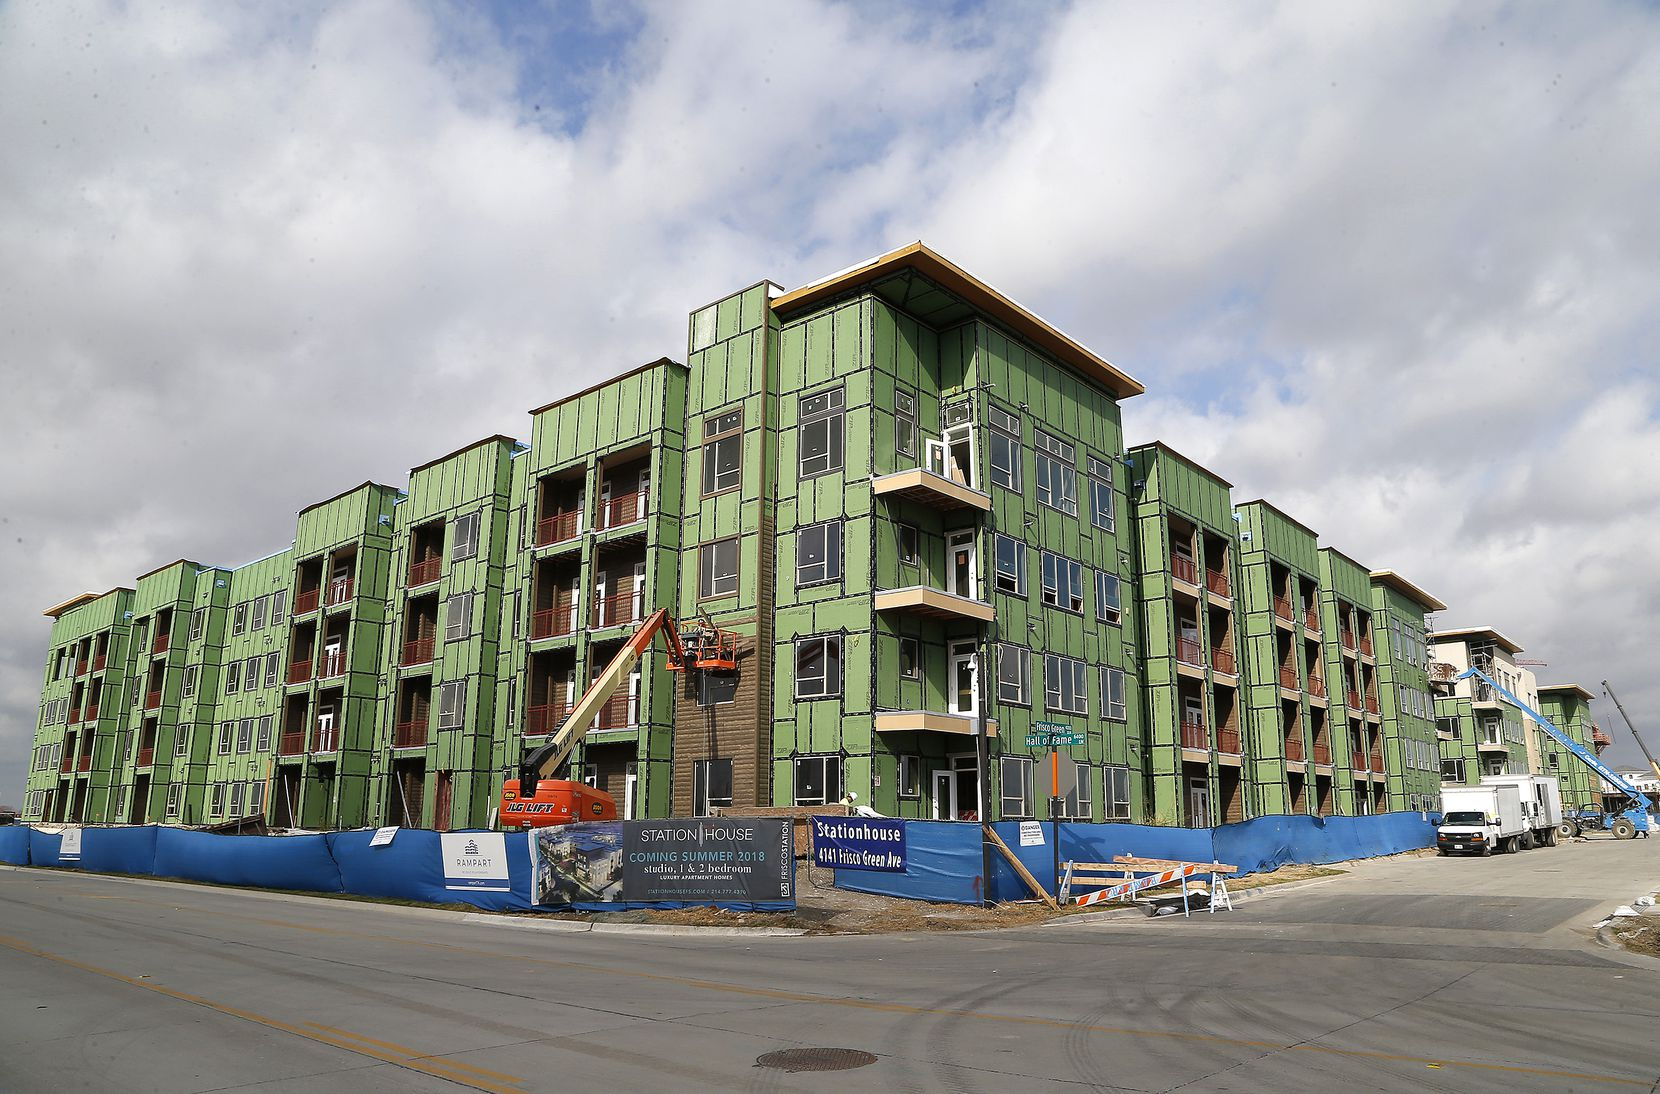 The Station House, part of the Frisco Station project, will open next year.